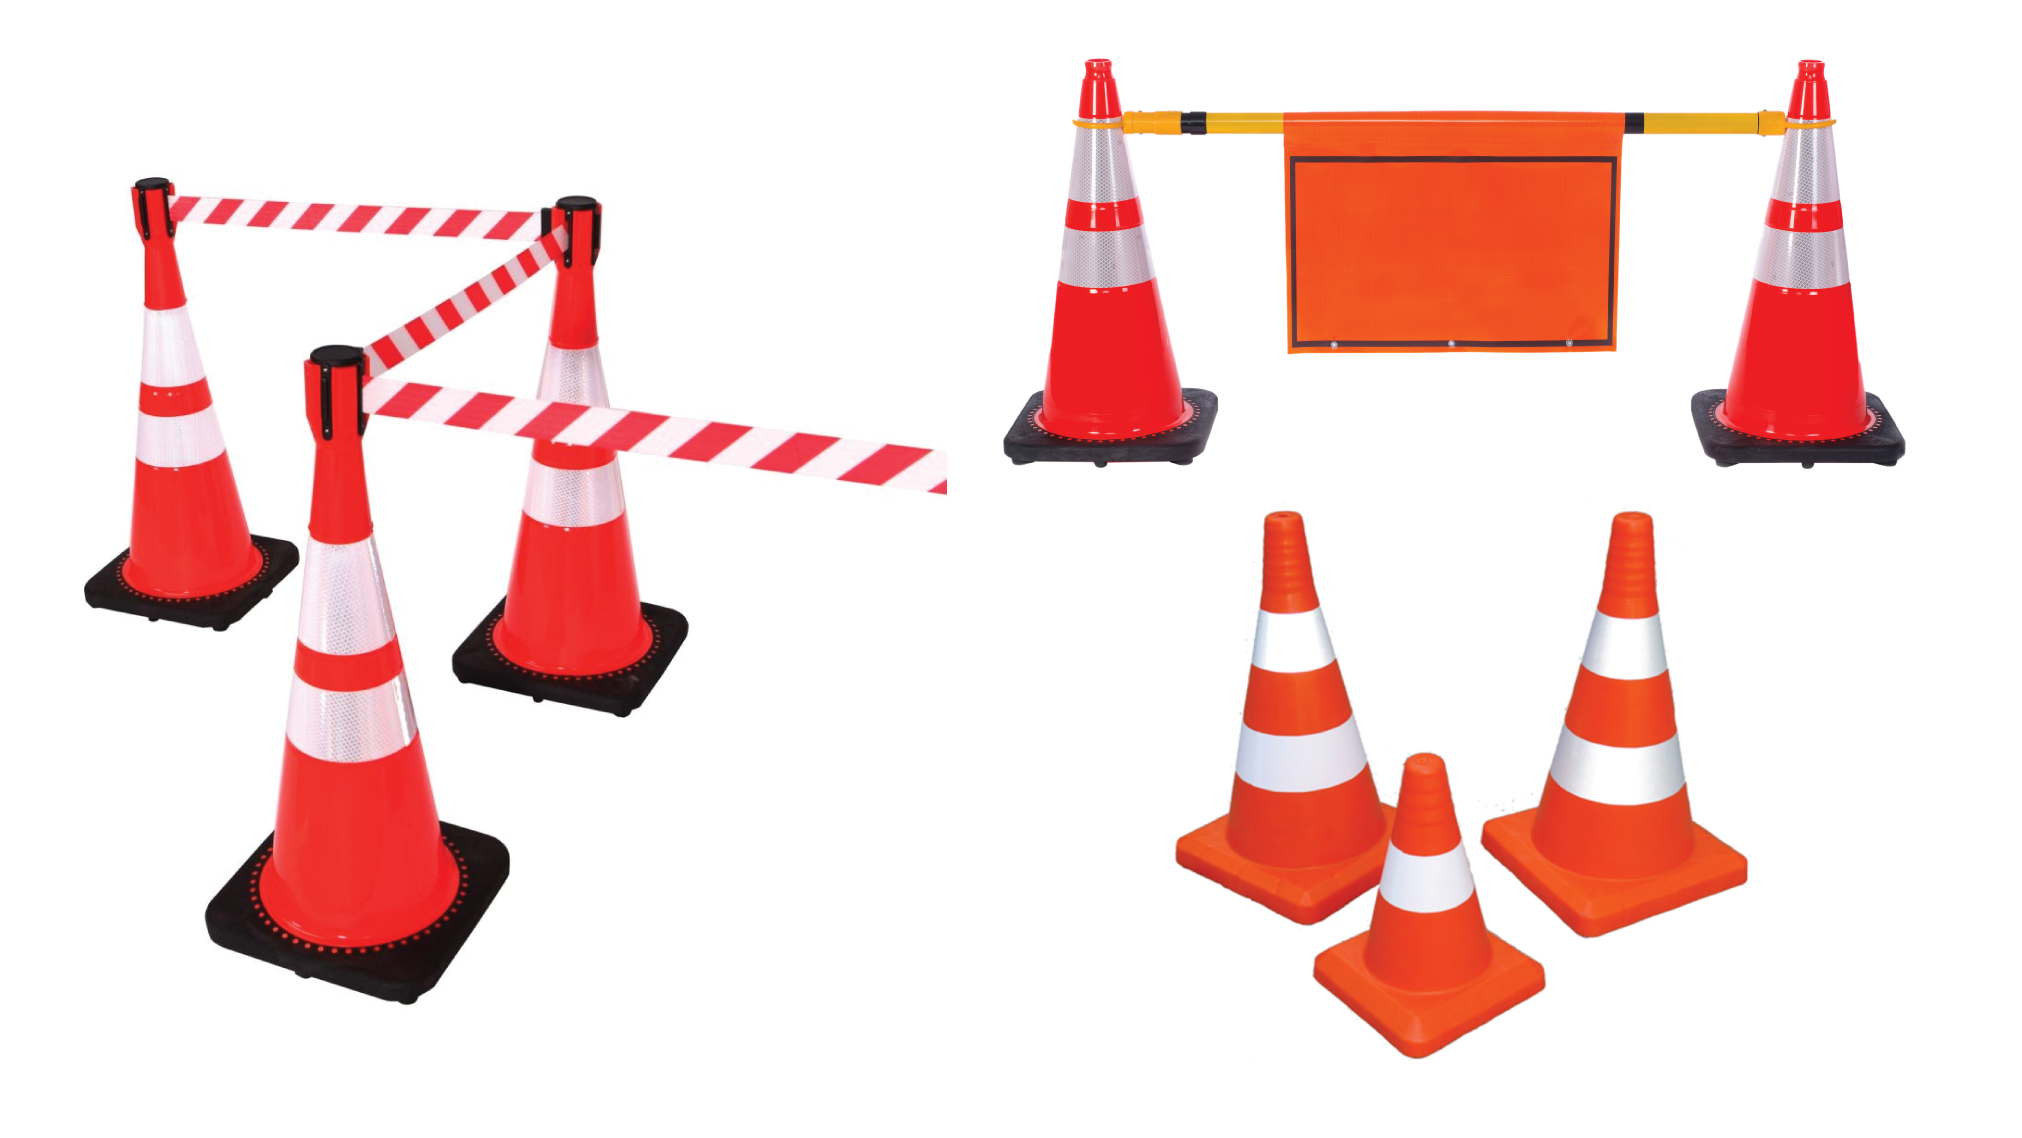 Cone clipart parking lot construction. World s best pvc